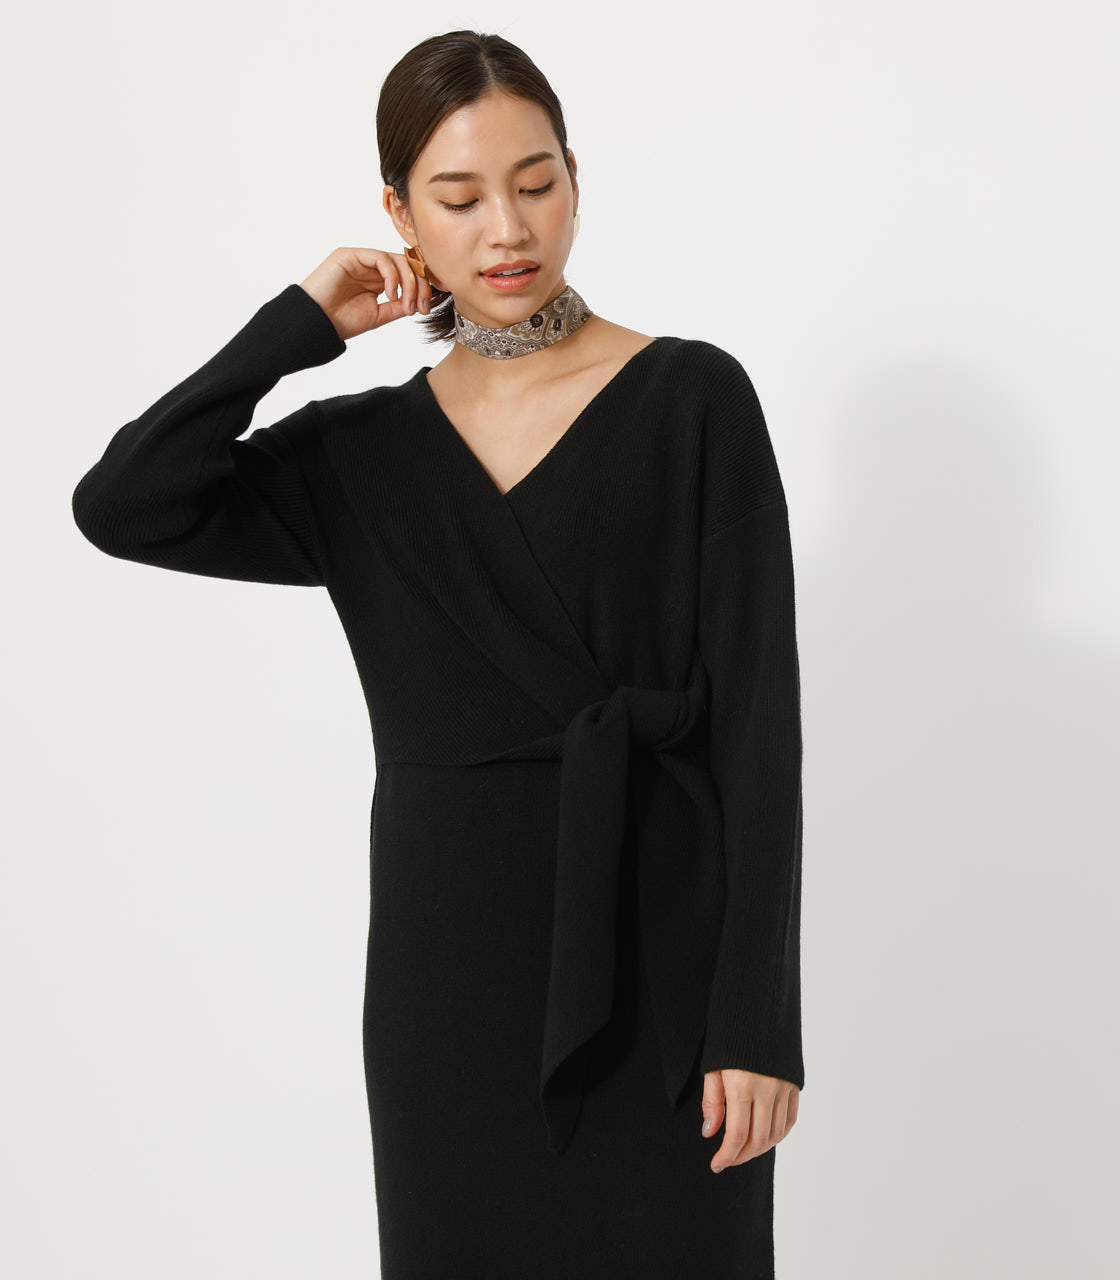 FRONT LINK KNIT ONEPIECE/フロントリンクニットワンピース 詳細画像 BLK 3